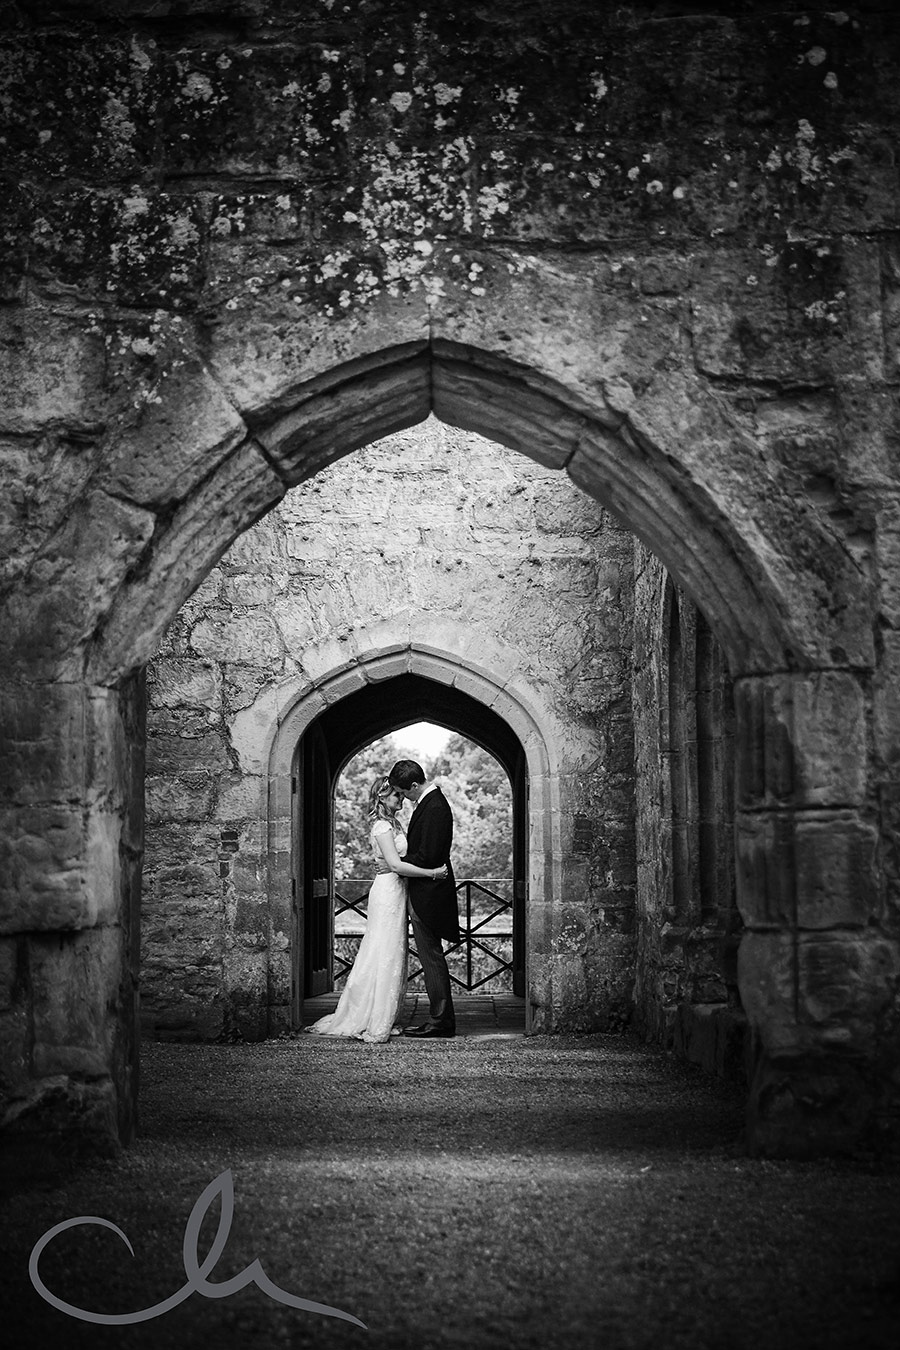 Laura-&-Henry's-Bodium-Castle-Wedding-64